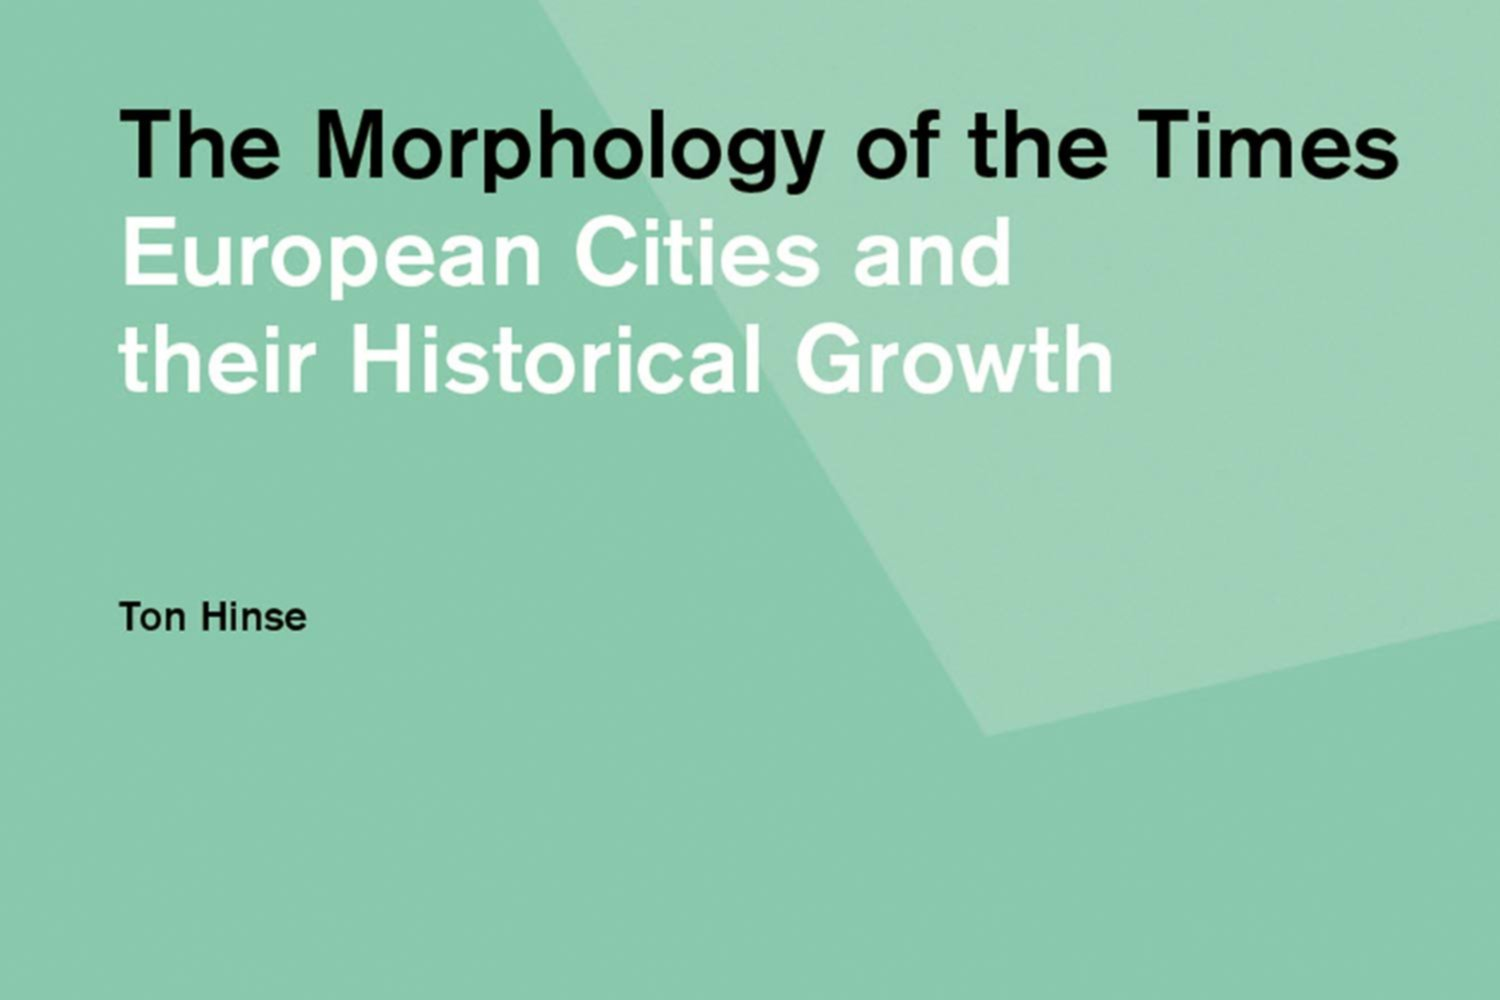 THE MORPHOLOGY OF THE TIMES EUROPEAN CITIES